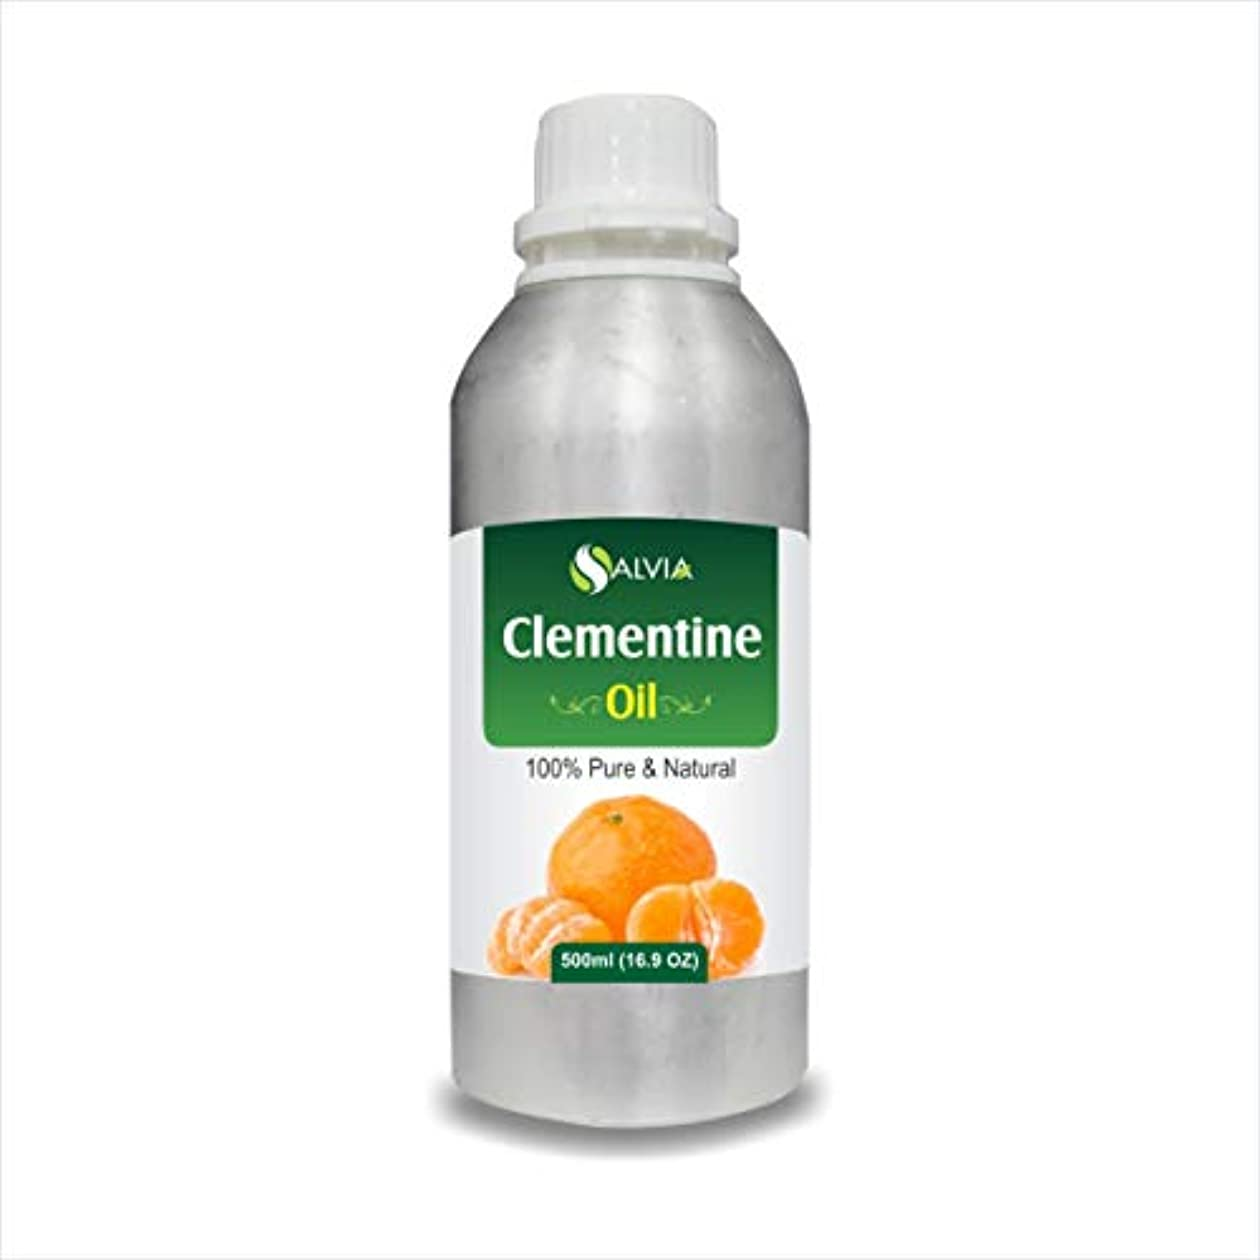 メロンムスラベンダーClementine Oil (Citrus Clementine) 100% Natural Pure Undiluted Uncut Essential Oil 500ml